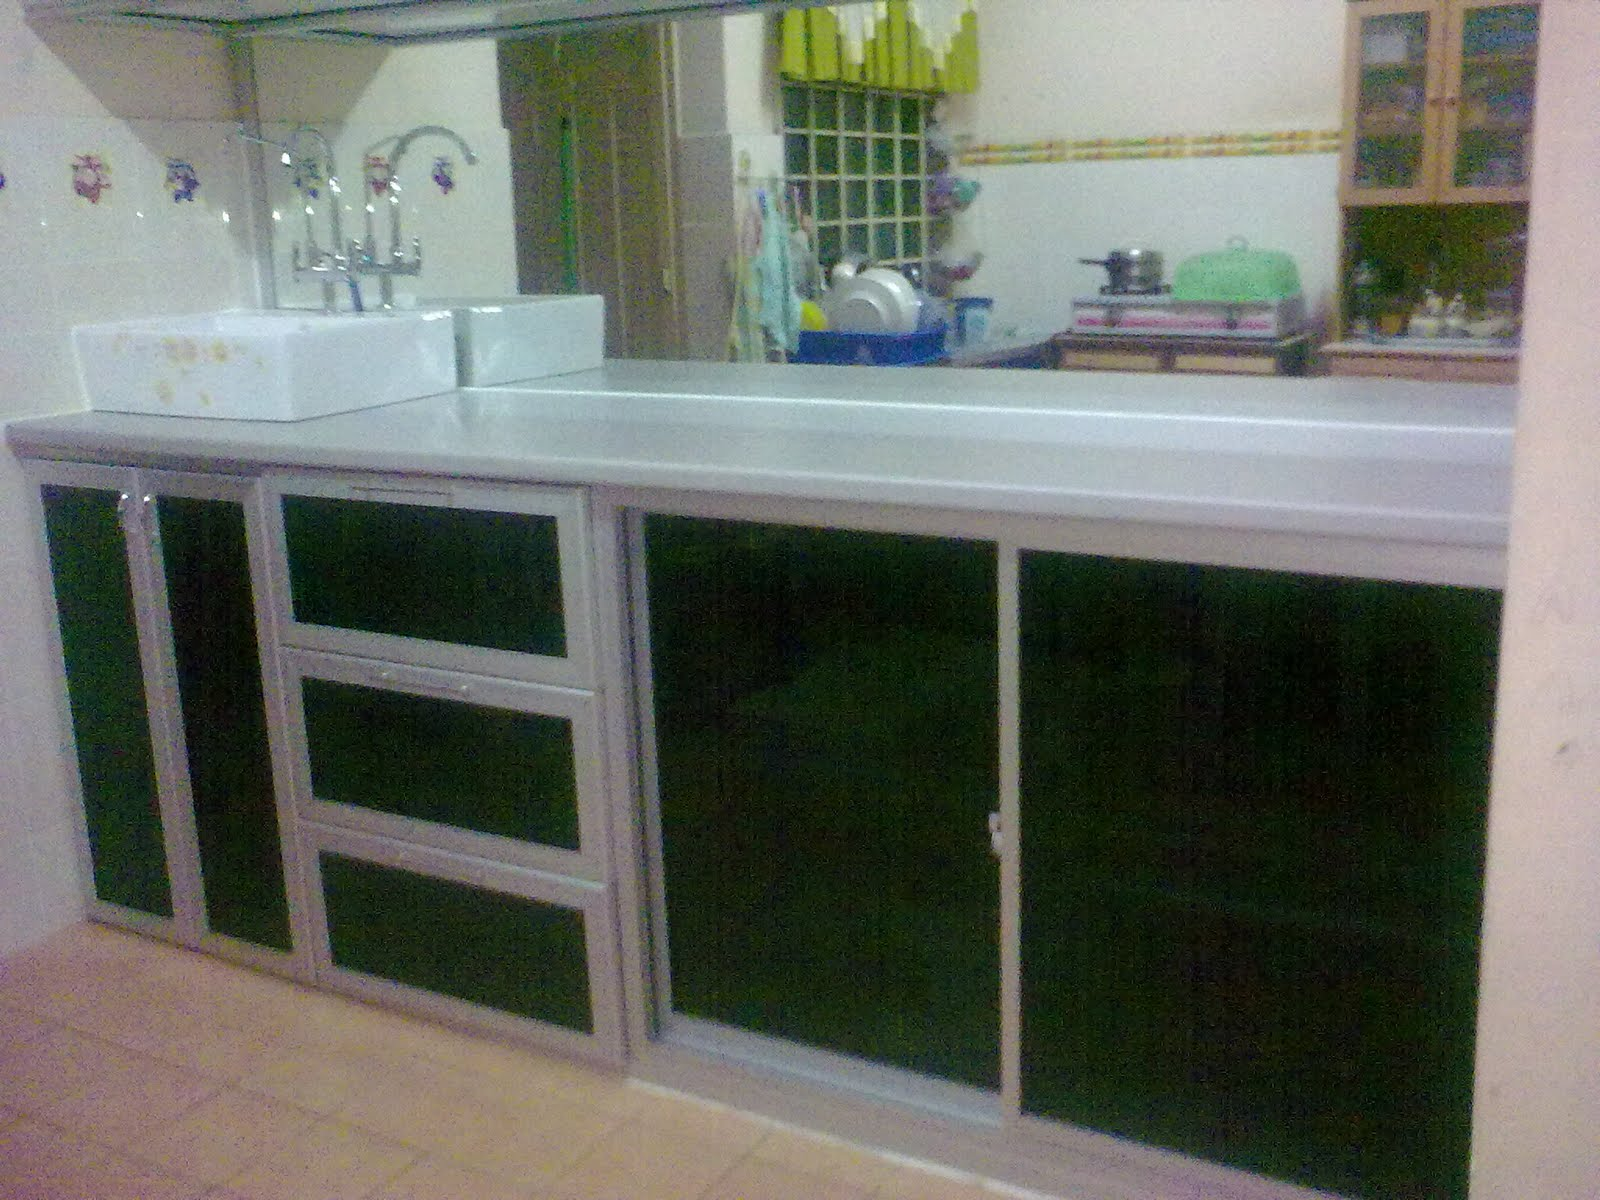 Aluminium Kitchen CabiDoor